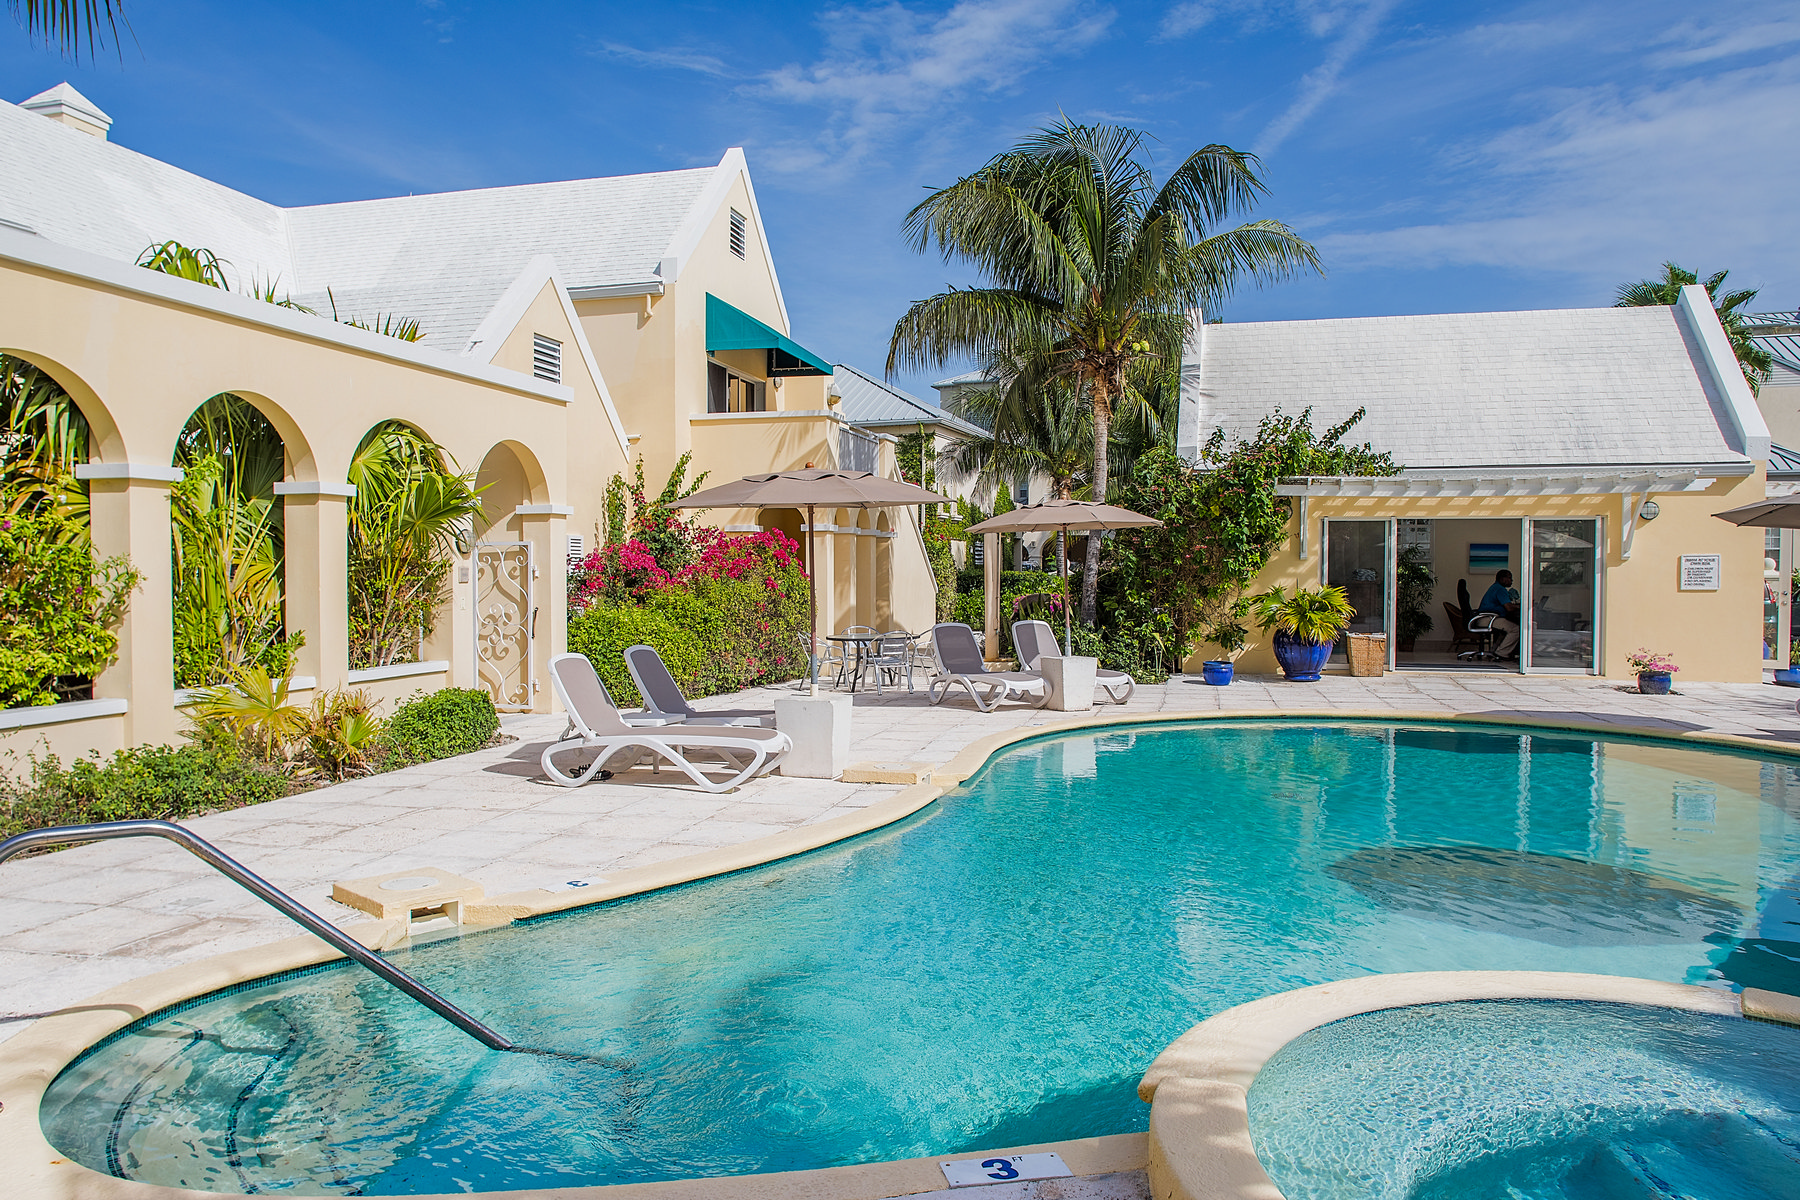 Additional photo for property listing at Reef Residences Reef Residences Grace Bay, Providenciales TKCA 1ZZ Îles Turques Et Caïques